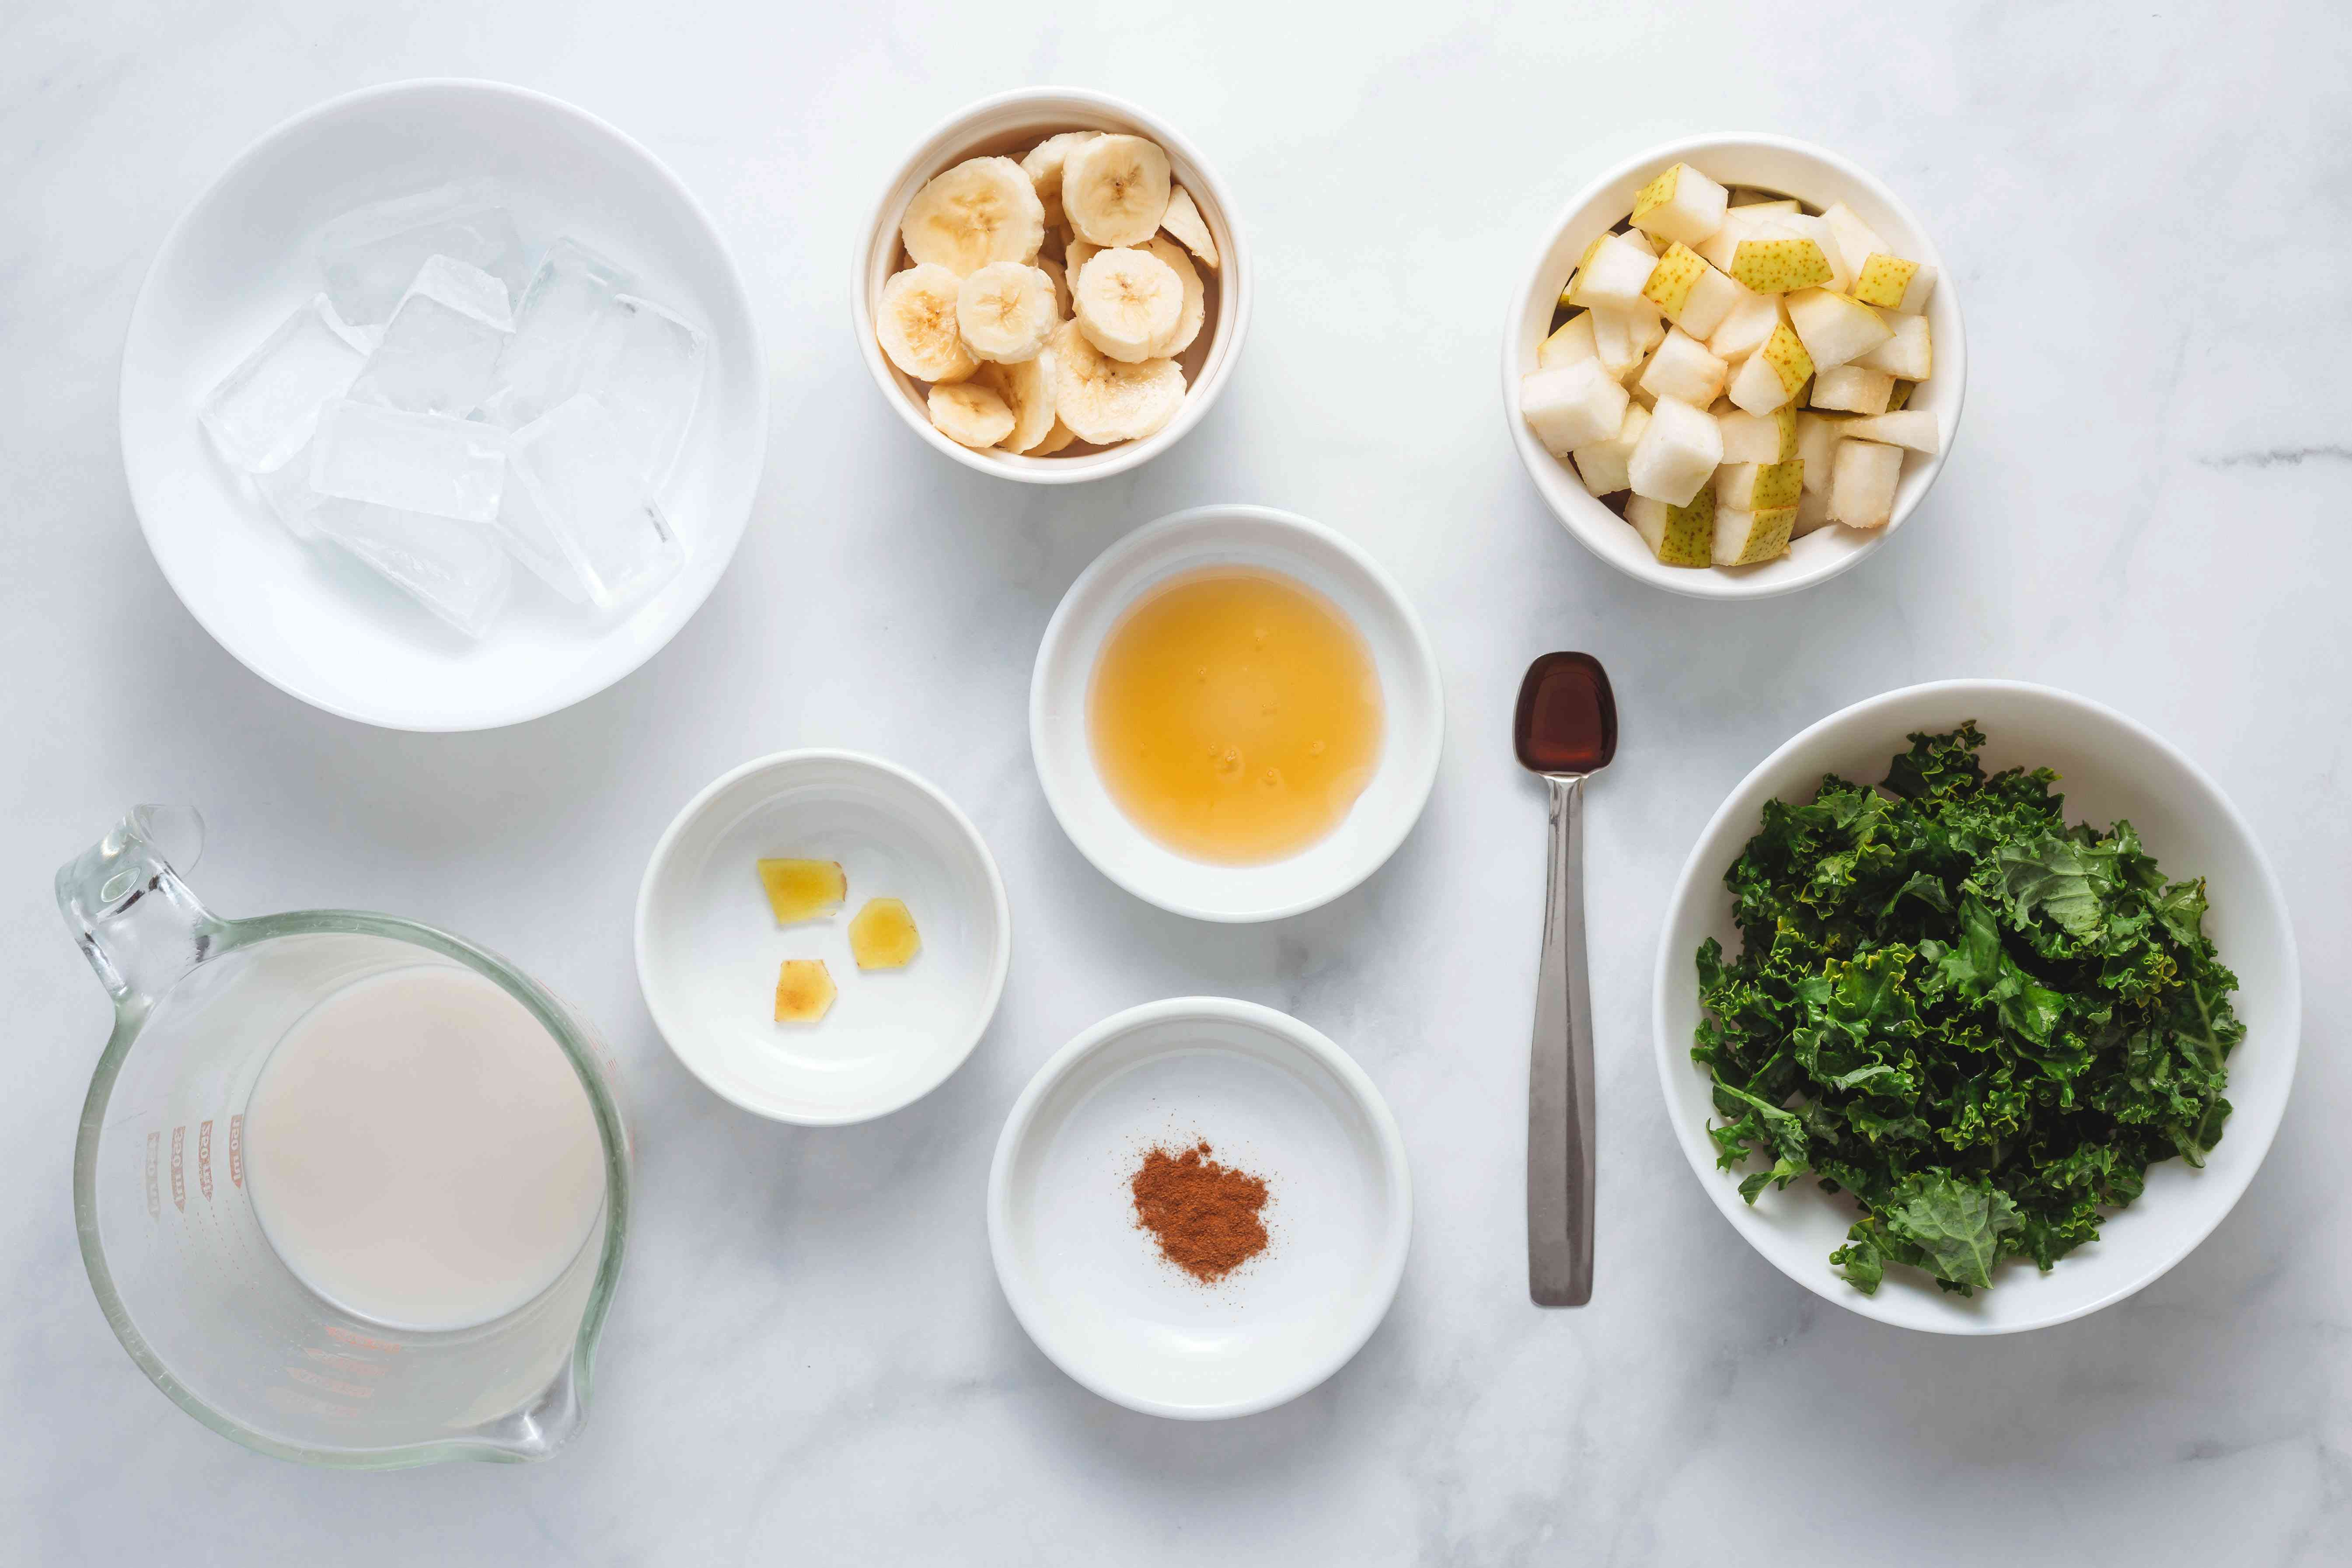 Ingredients for a green pear smoothie